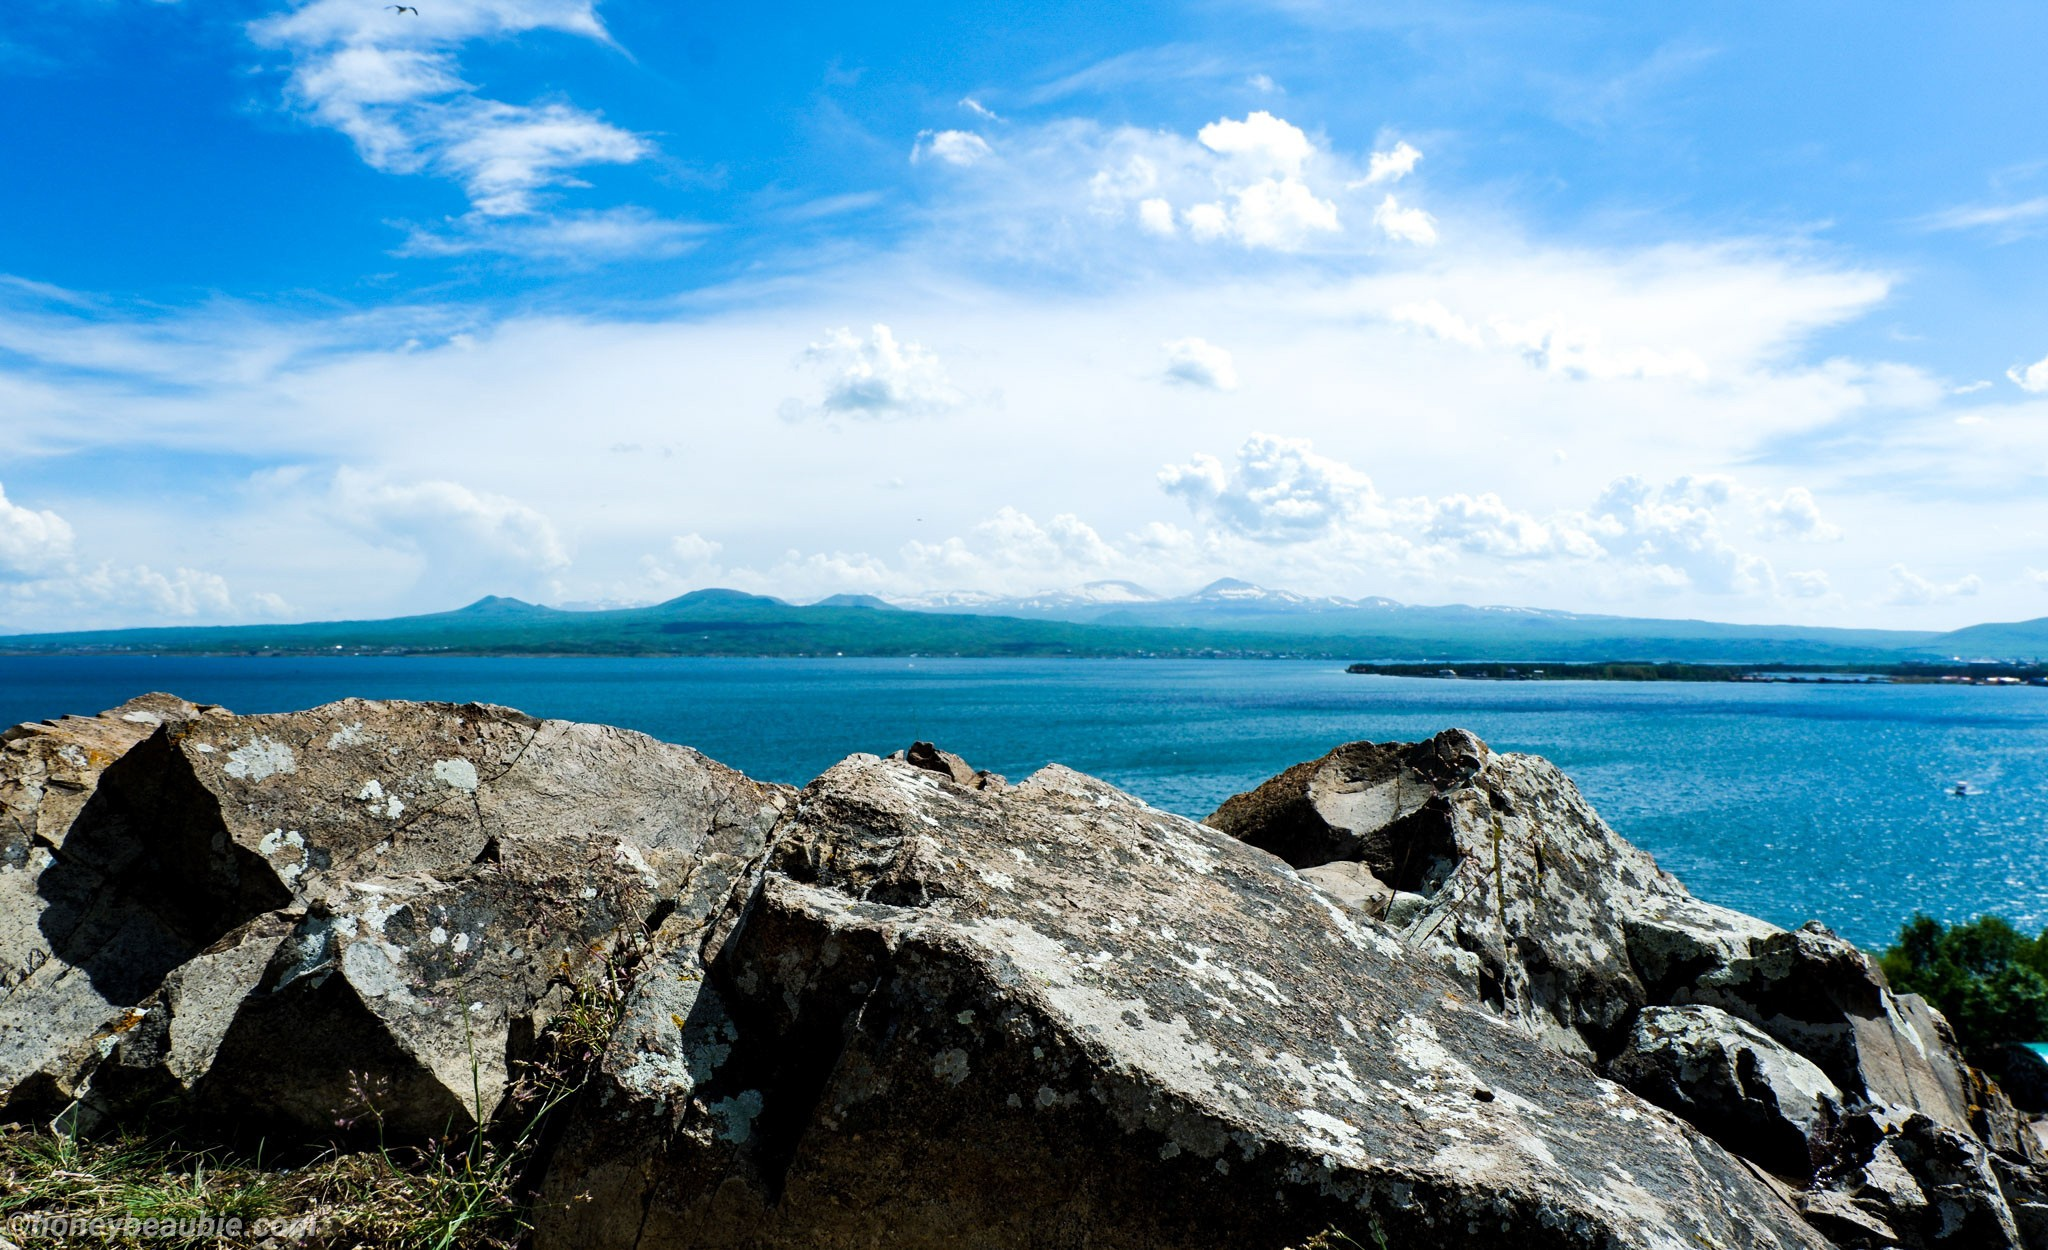 view of lake sevan from up the sevanavank monastery